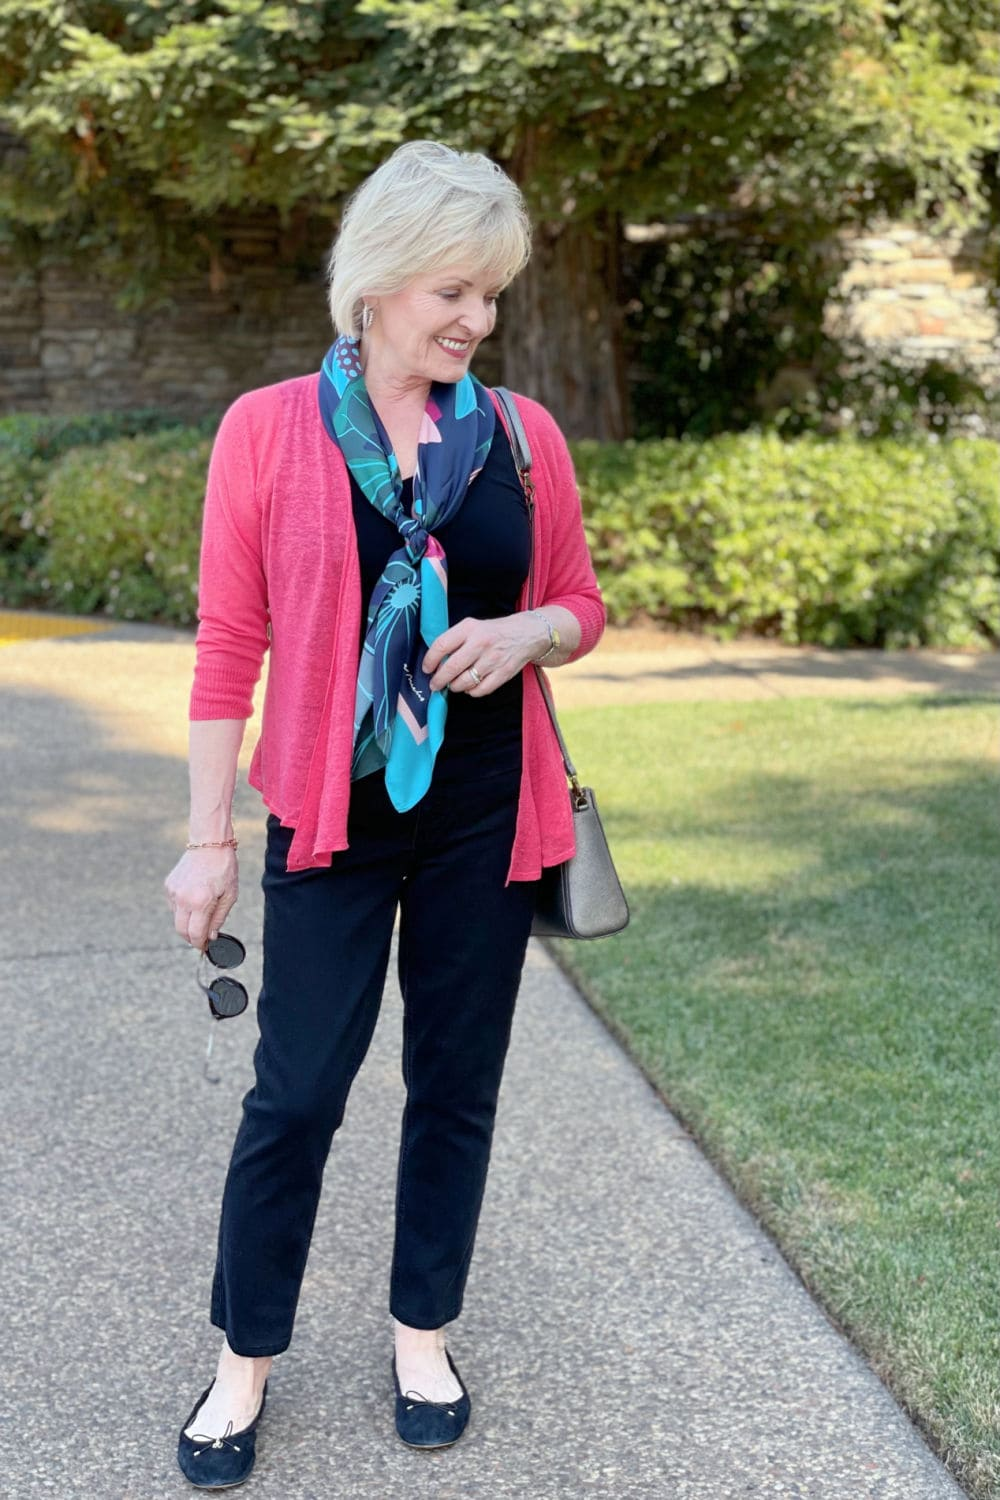 over 50 blogger jennifer connolly showing how to wear a colorful cardigan for later in the fall